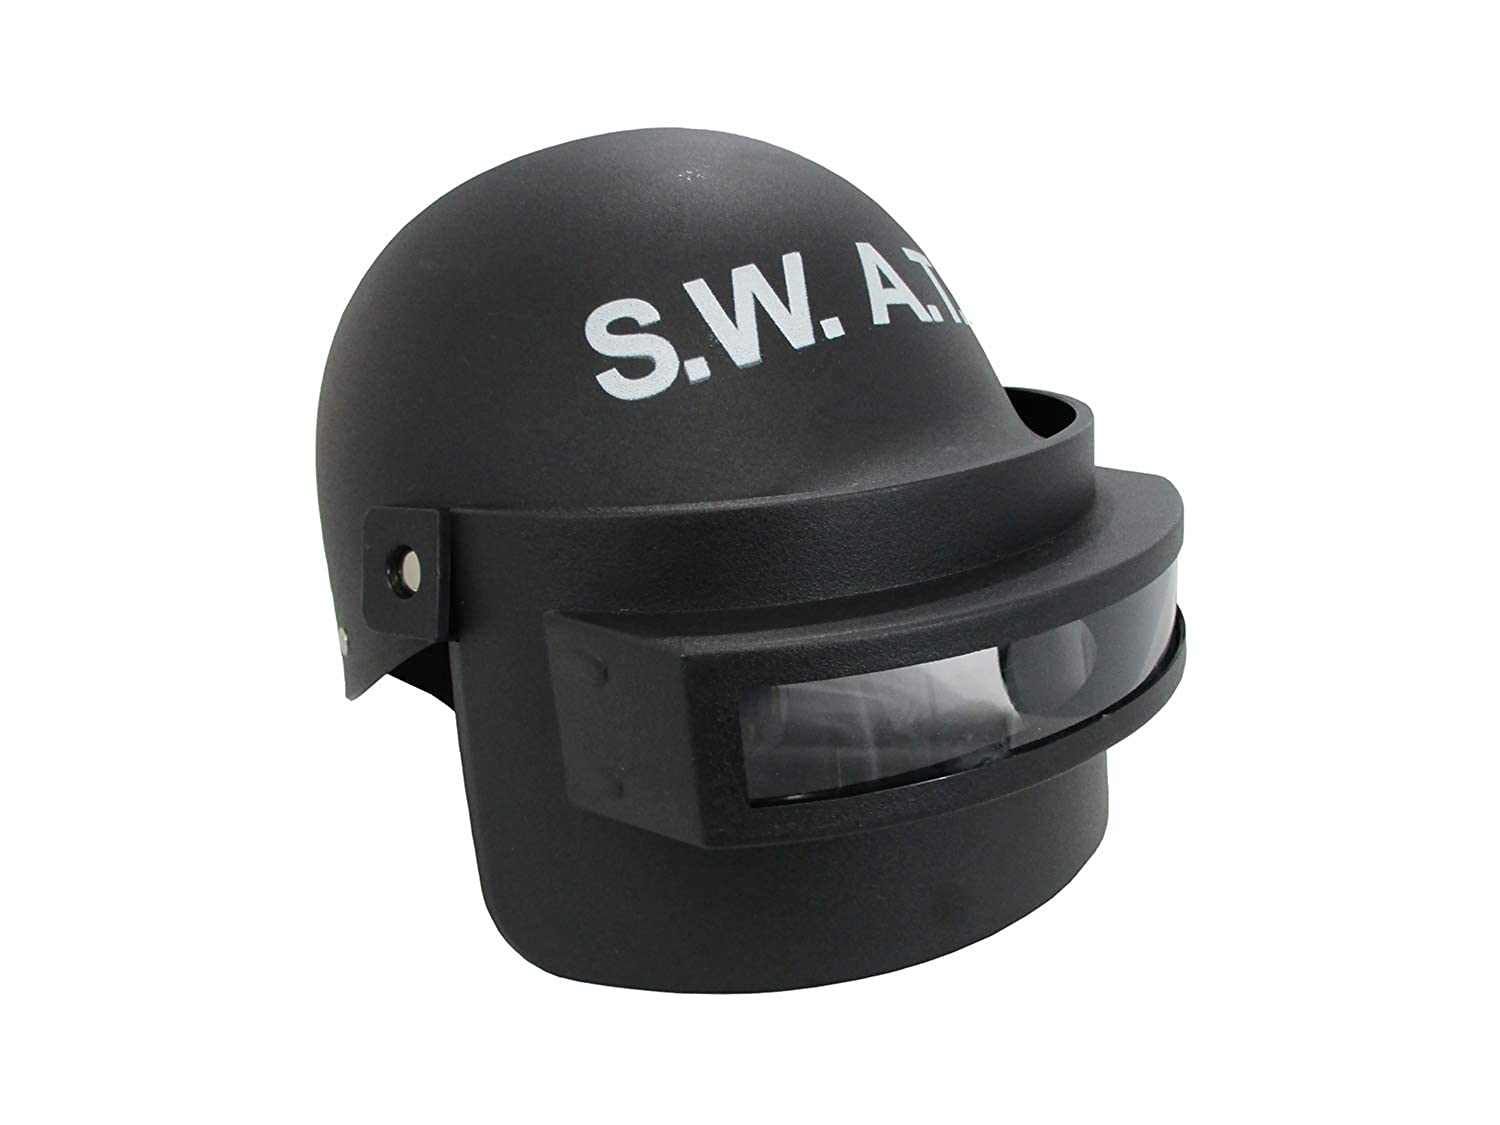 Adult S.W.A.T. Helmet with Folding Face Mask Costume Accessory